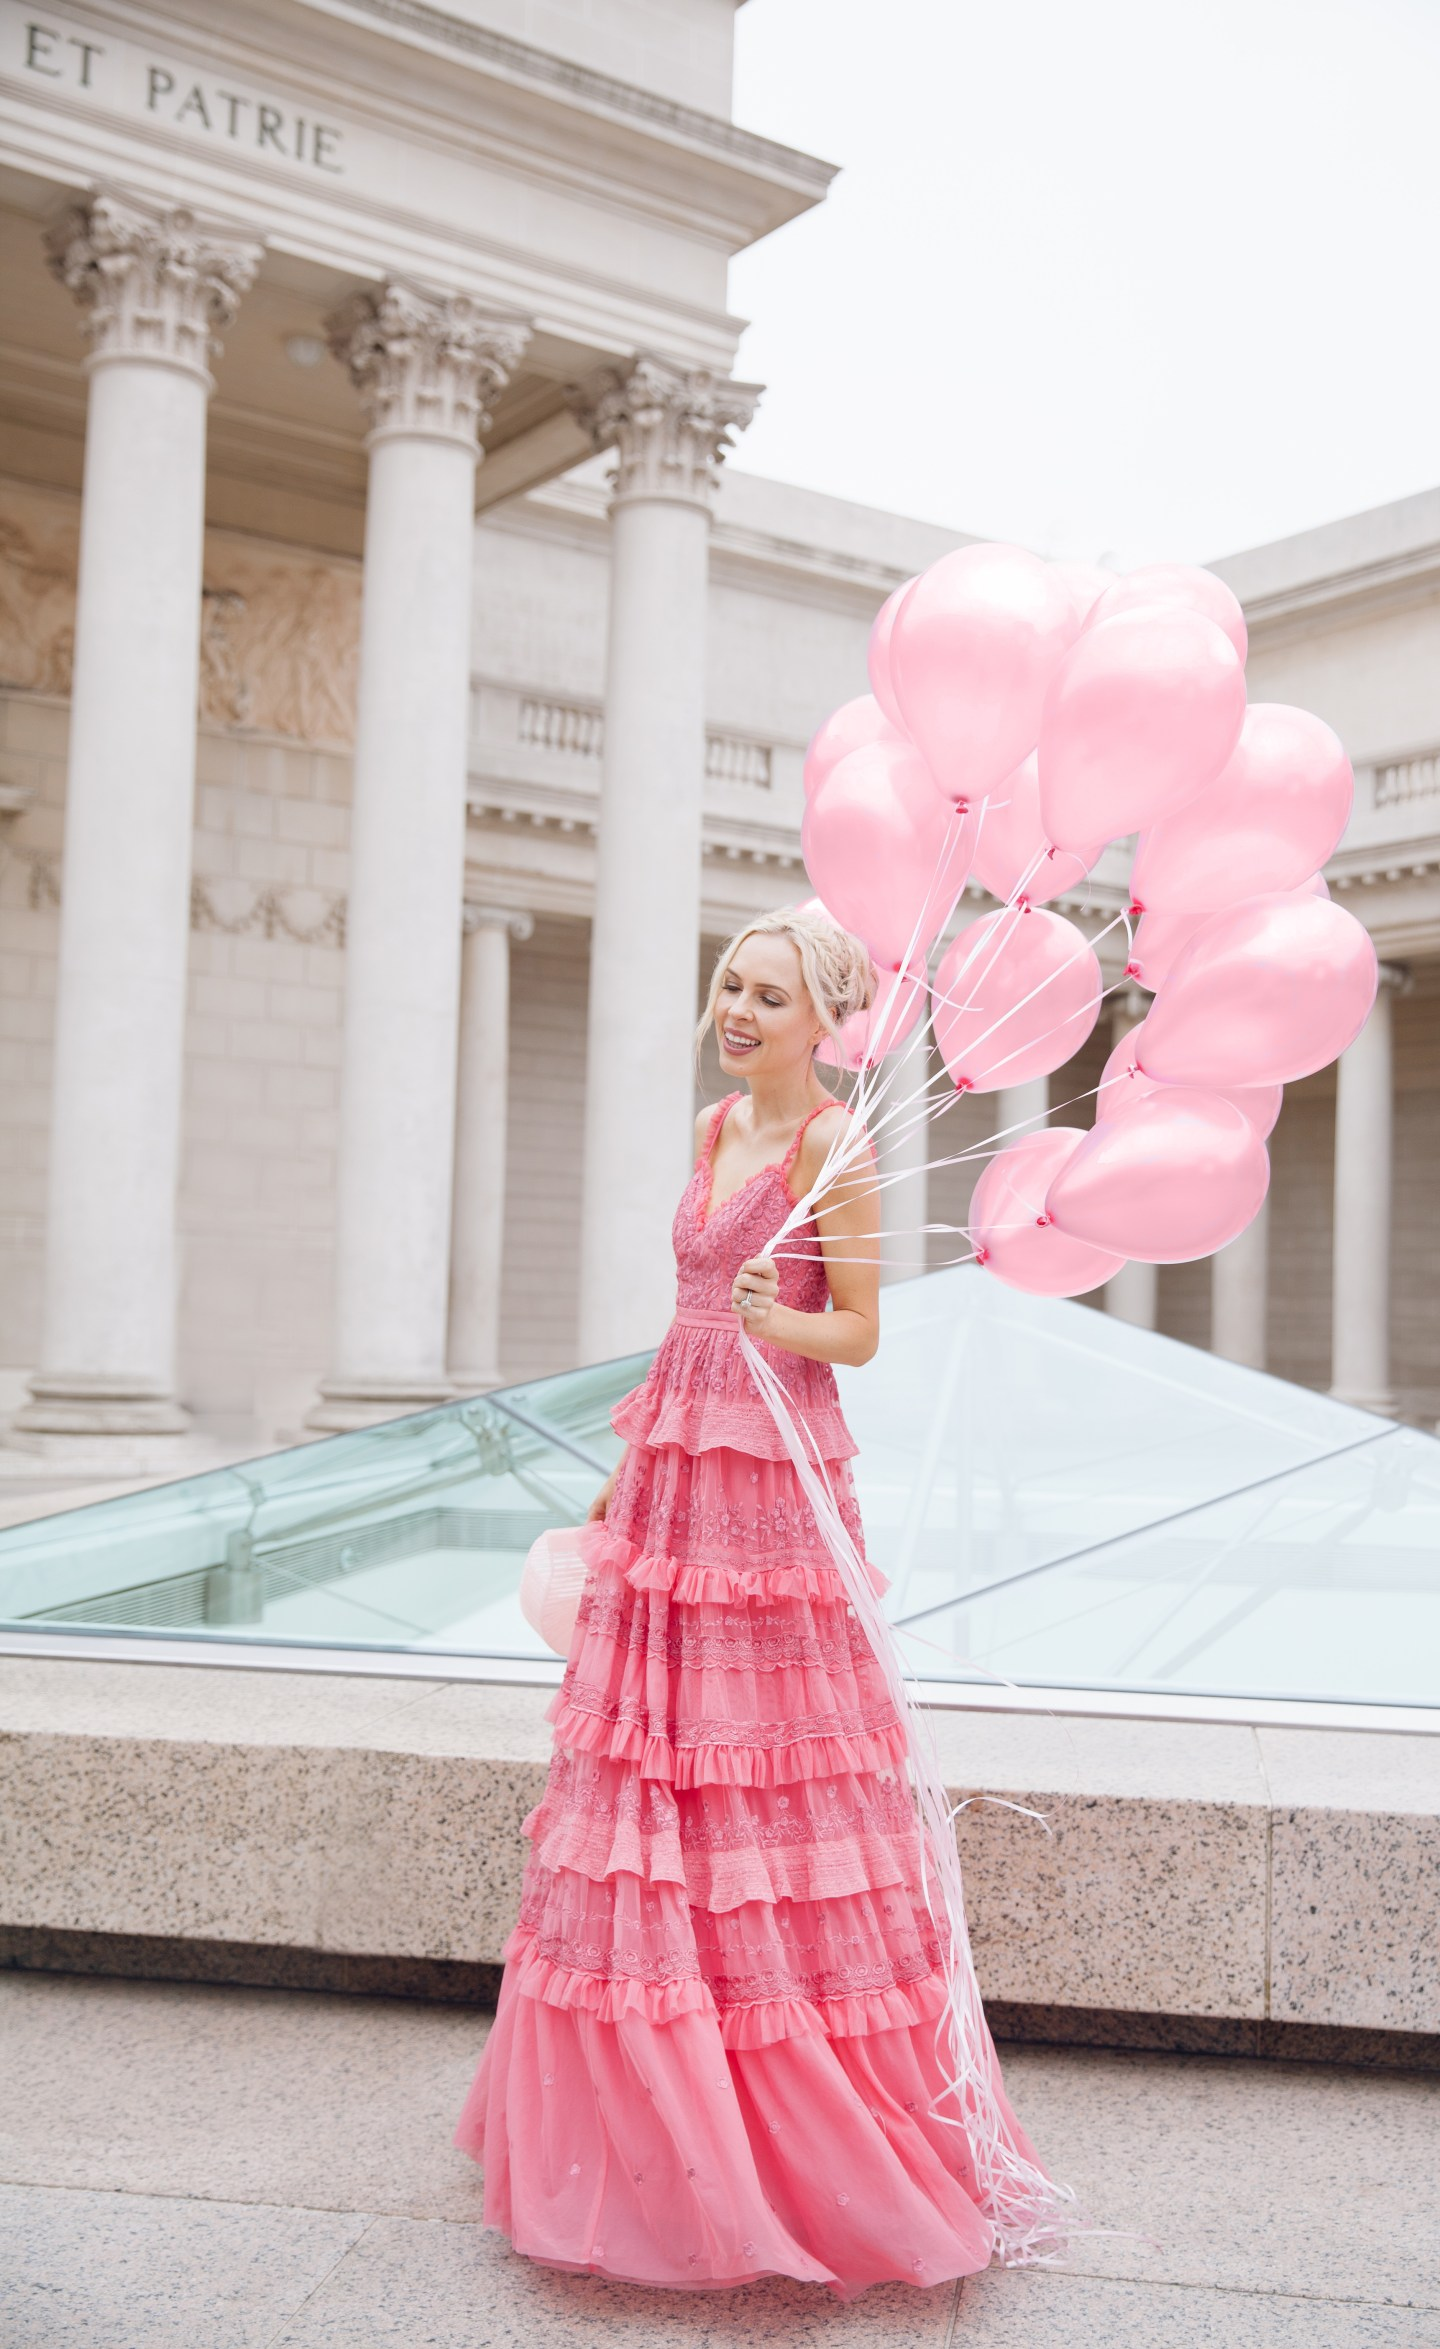 how to eBay, my style journey, needle & thread dress maxi pink embroidered   Top San Francisco fashion blog, Lombard and Fifth, features her tips on How to Ebay effectively: image of a blonde woman wearing a stunning maxi dress found on Ebay